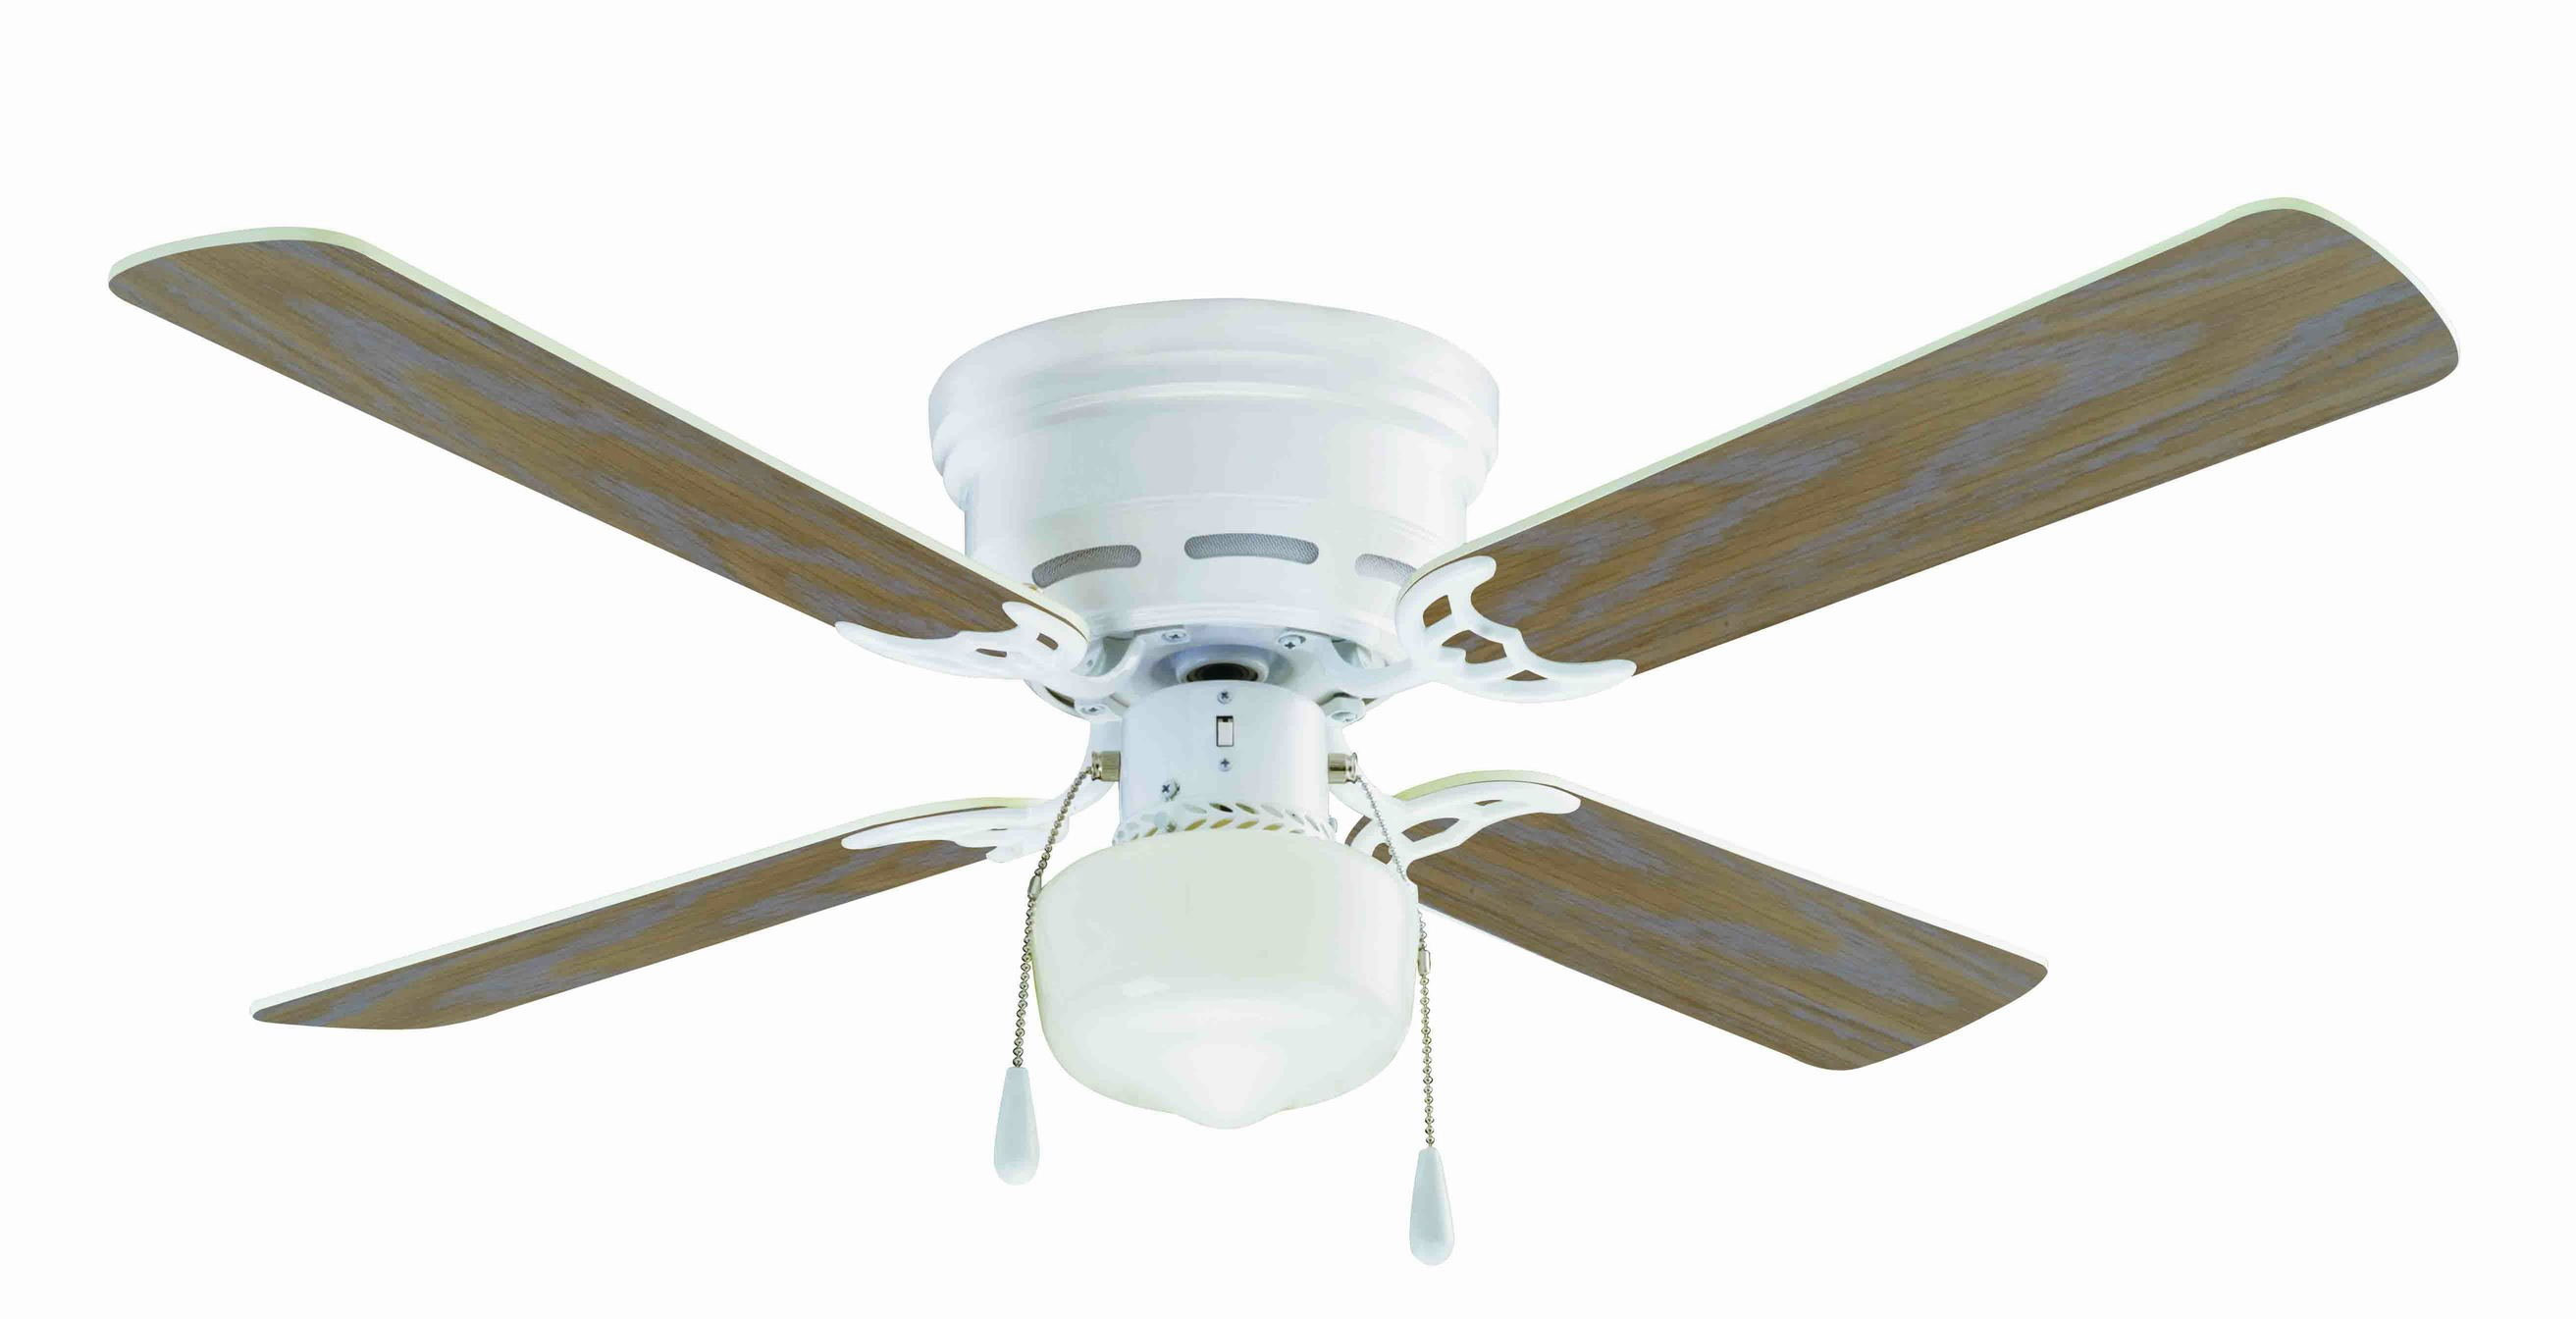 in mount wayfair lots general online lights wendy big home ceilings electric depot flush remotes with setscdnpaytmcomimagescatalogproduct antique amazon walmart white remote mm fans ceiling lowes fan kmart plug blades decor orient